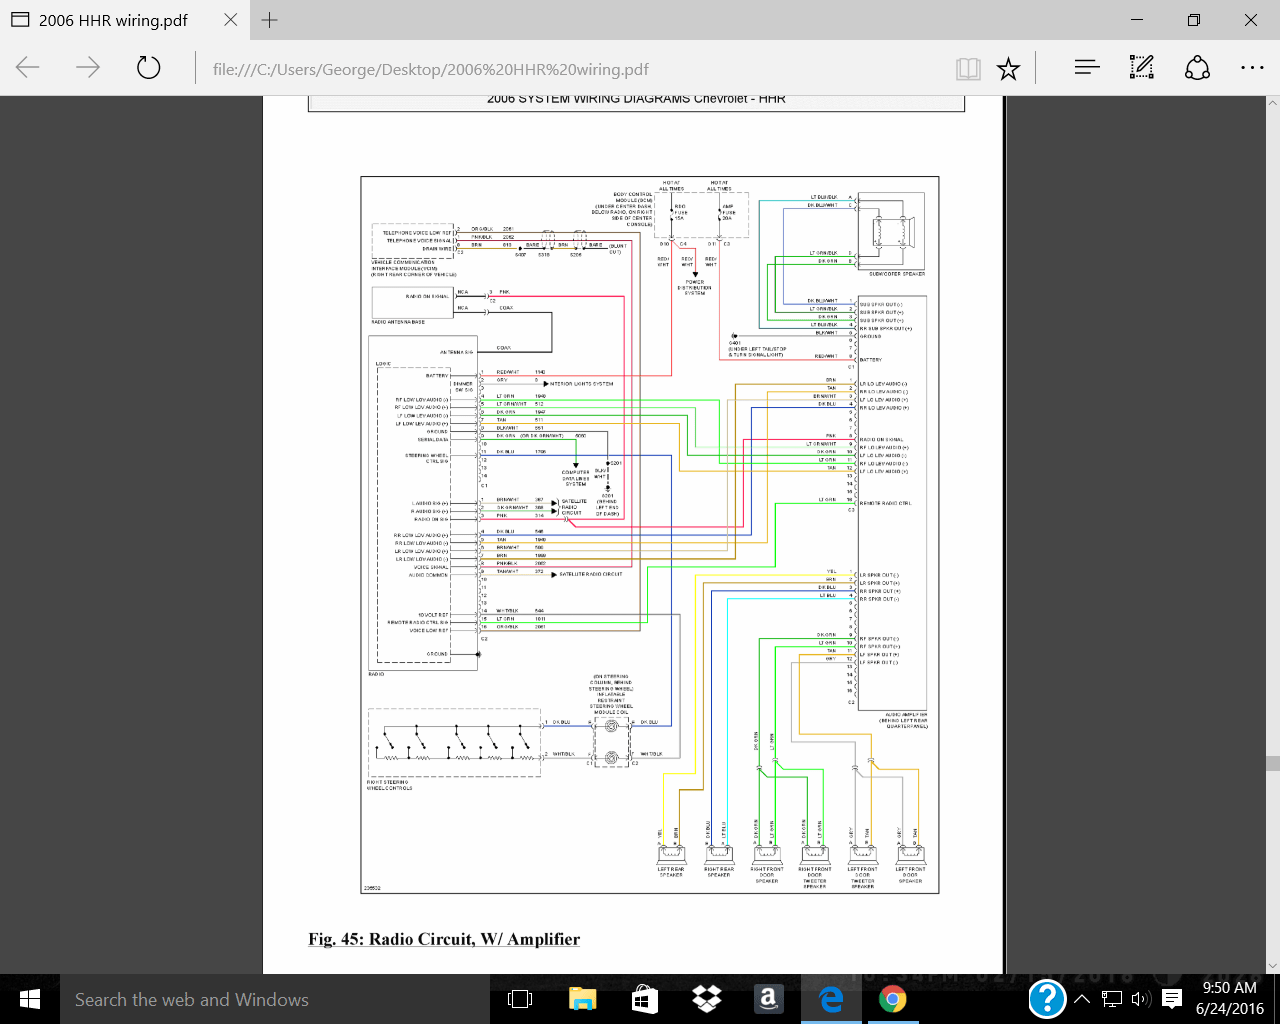 Rls 12v Relay Wiring Diagram 125 Gas Log Valve Colorful Denso Oxygen Sensor Wire Colors Photos Electrical Basic